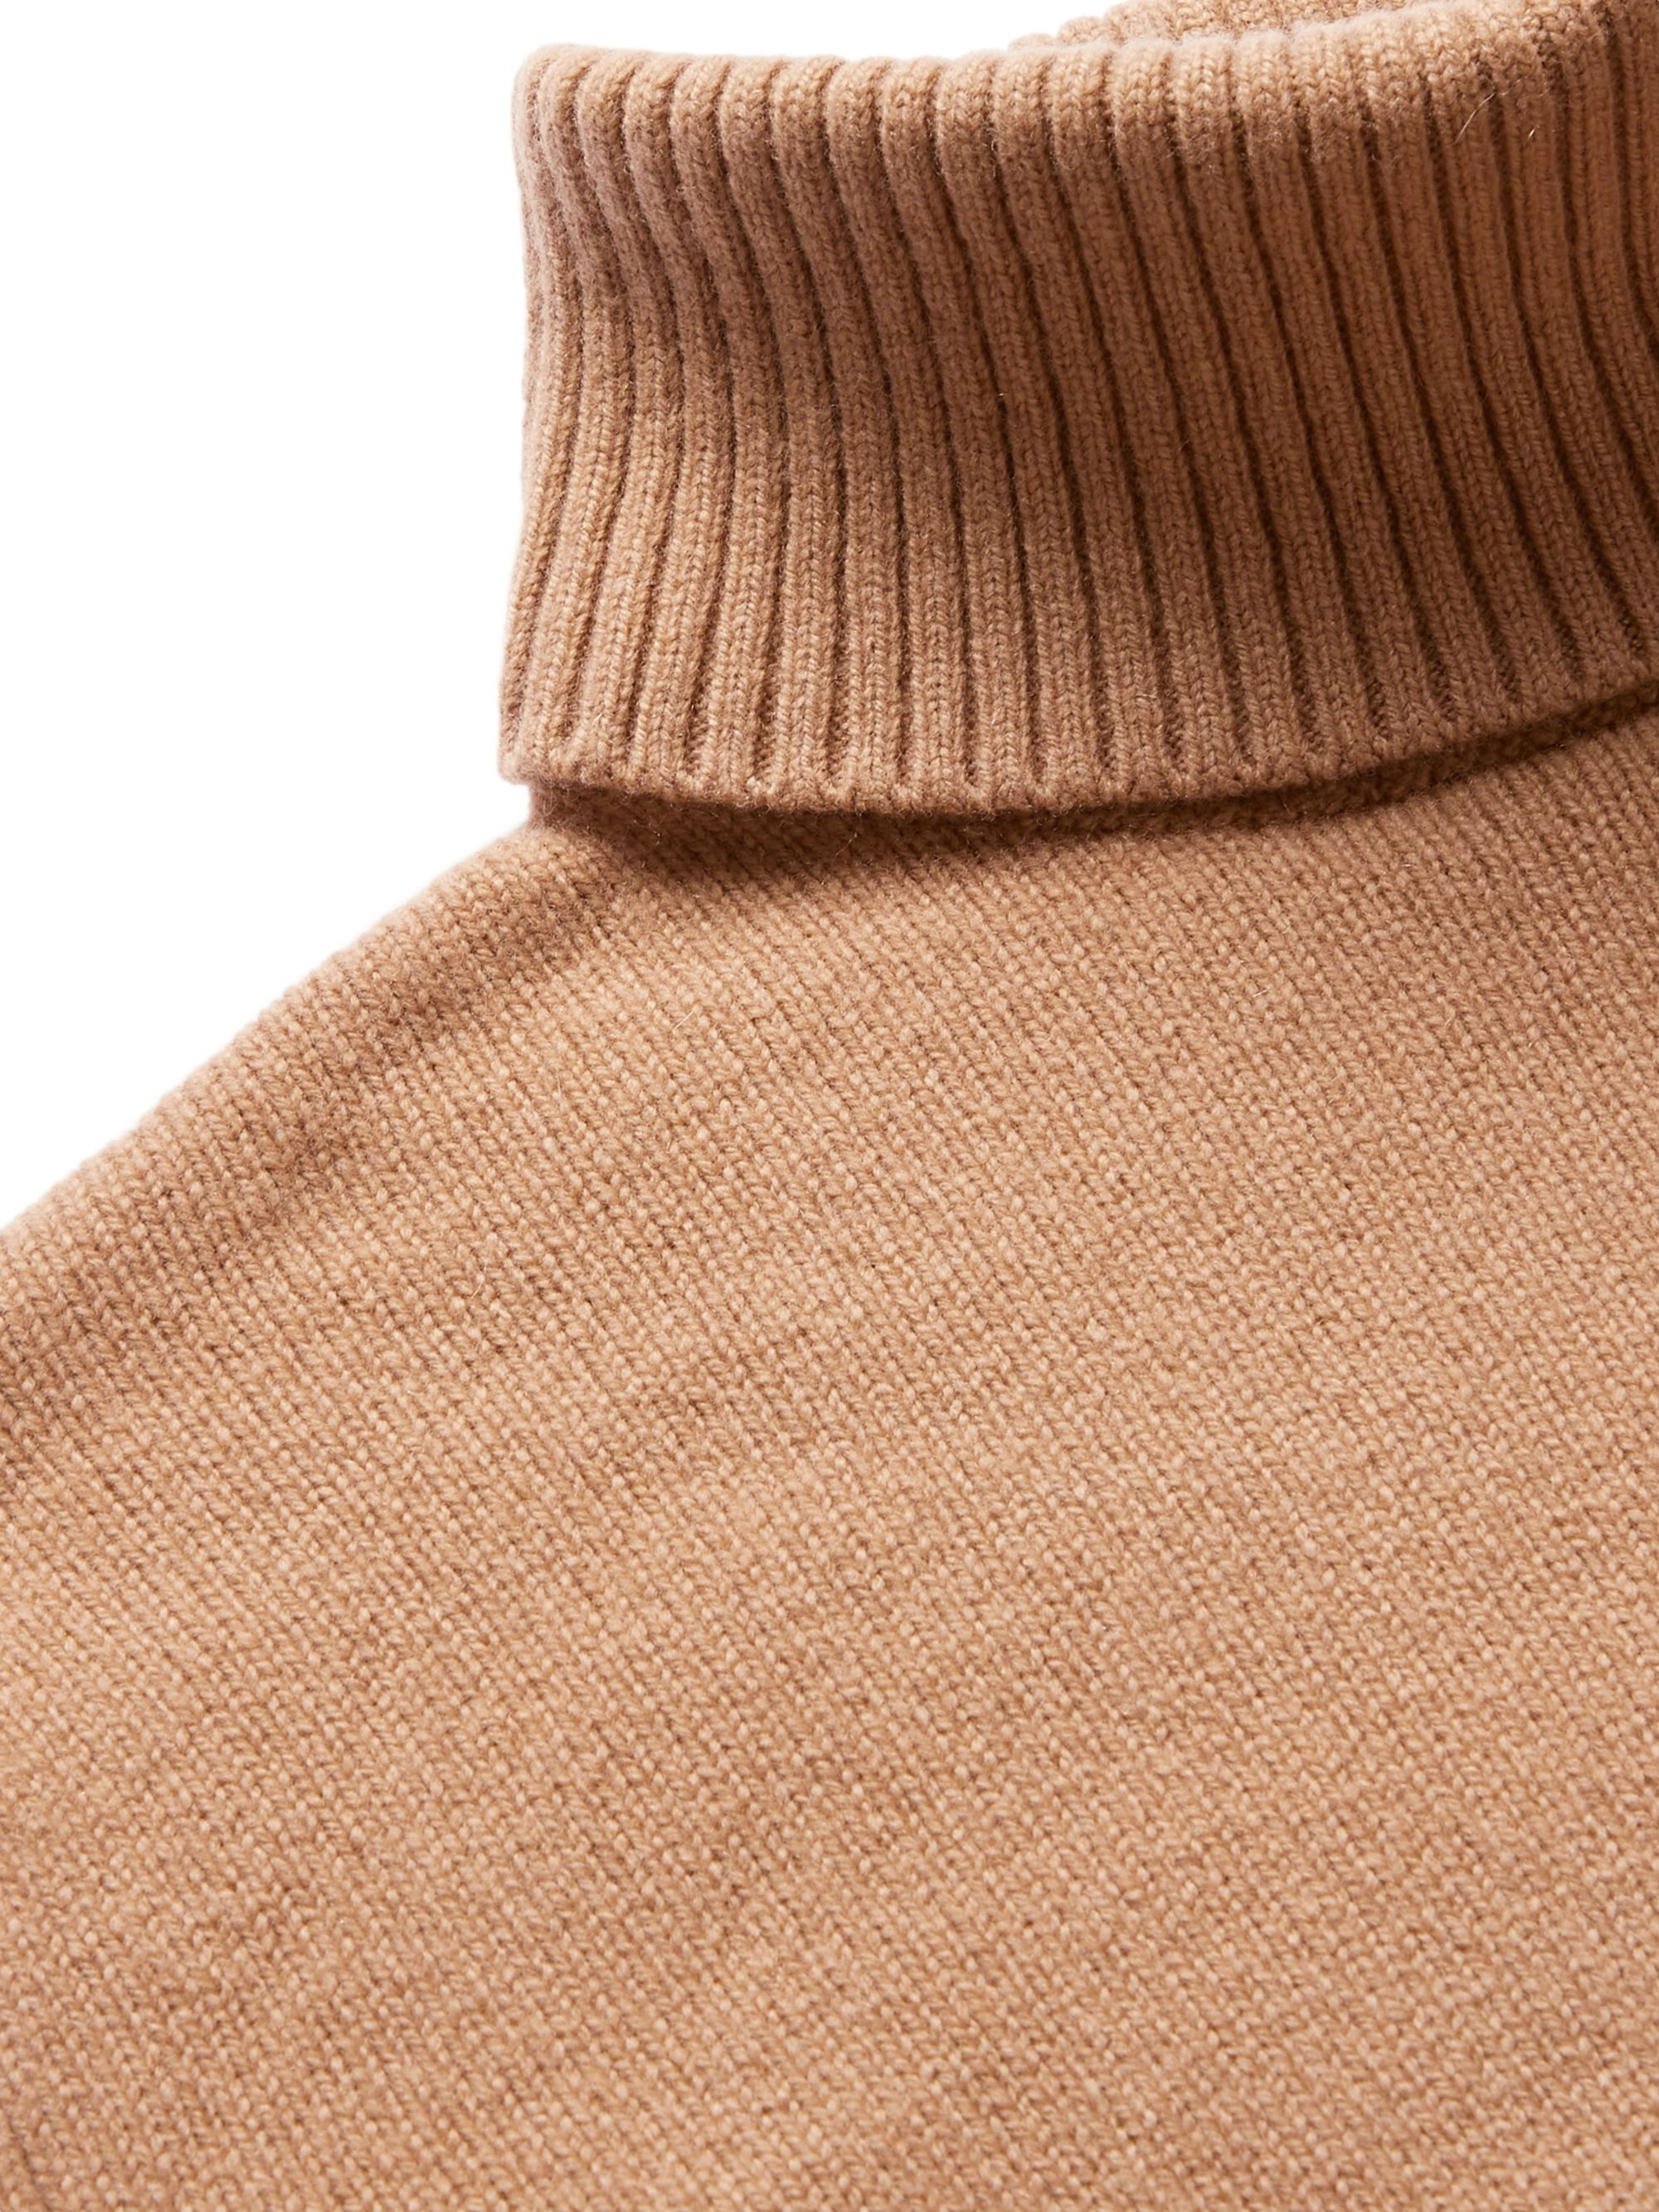 A.P.C. Enzo Wool and Cashmere-Blend Rollneck Sweater